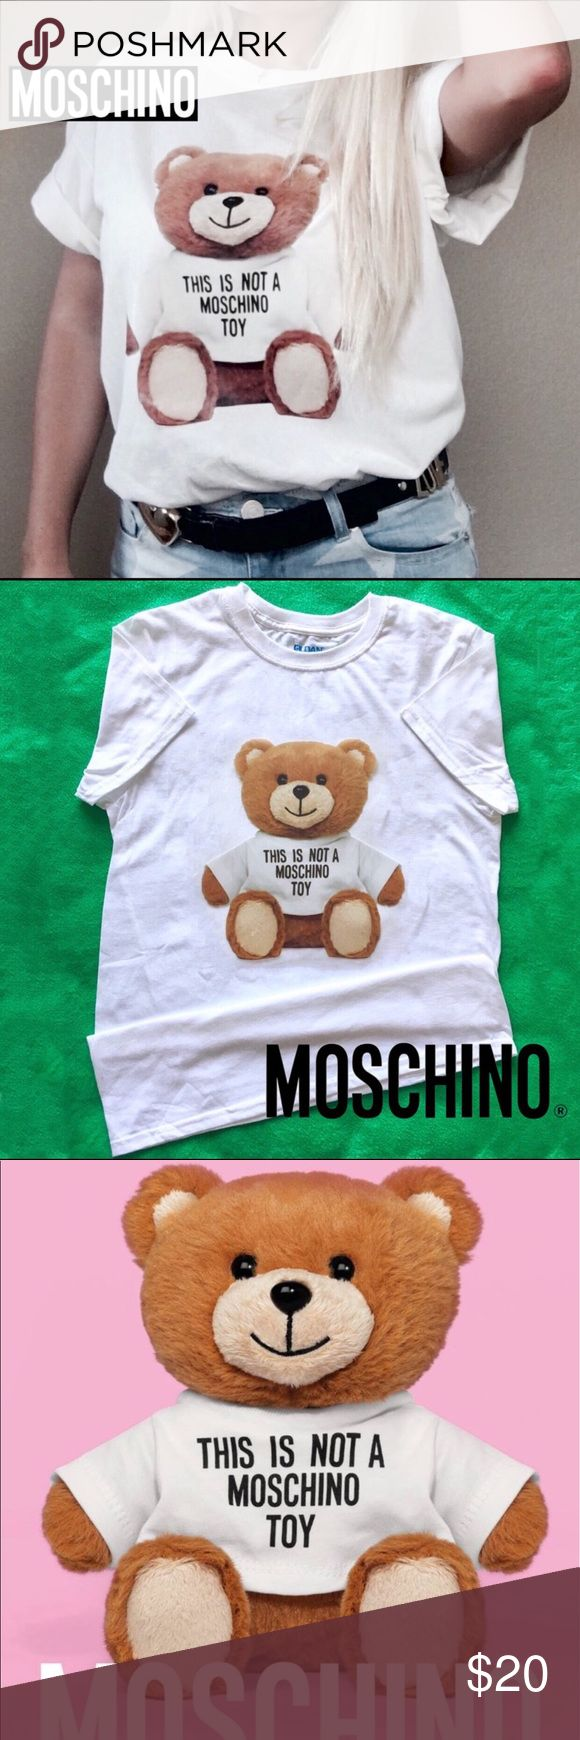 """🐻Moschino ® Toy Teddy T-Shirt🐻 Moschino ® Toy Teddy T-Shirt   Size: Moschino  MOSCHINO Teddy Bear t-shirt  Color: White Size: S (Loose style)   Realistic Large Teddy Bear """"THIS IS NOT A MOSCHINO TOY"""" Brand New shirt!  